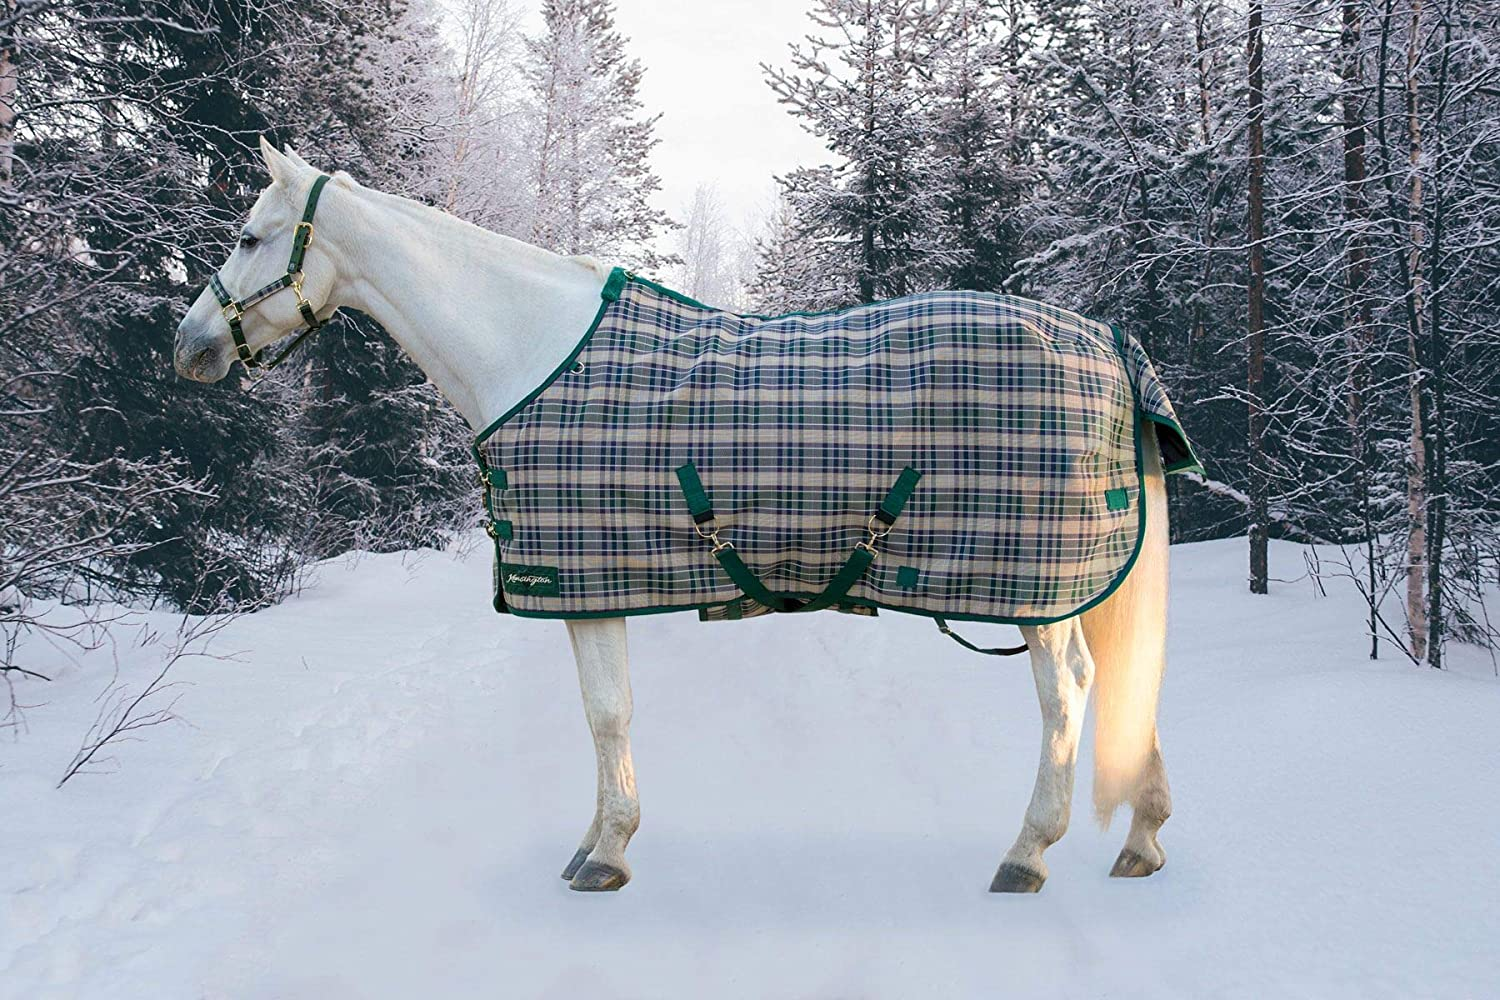 180g SuperMesh Horse Turnout Blanket by Kensington /— Waterproof for All-Day Protection Breathable and Insulated Horse Turnout Rug for Your Horse /— Perfect for Sub-Zero Weather